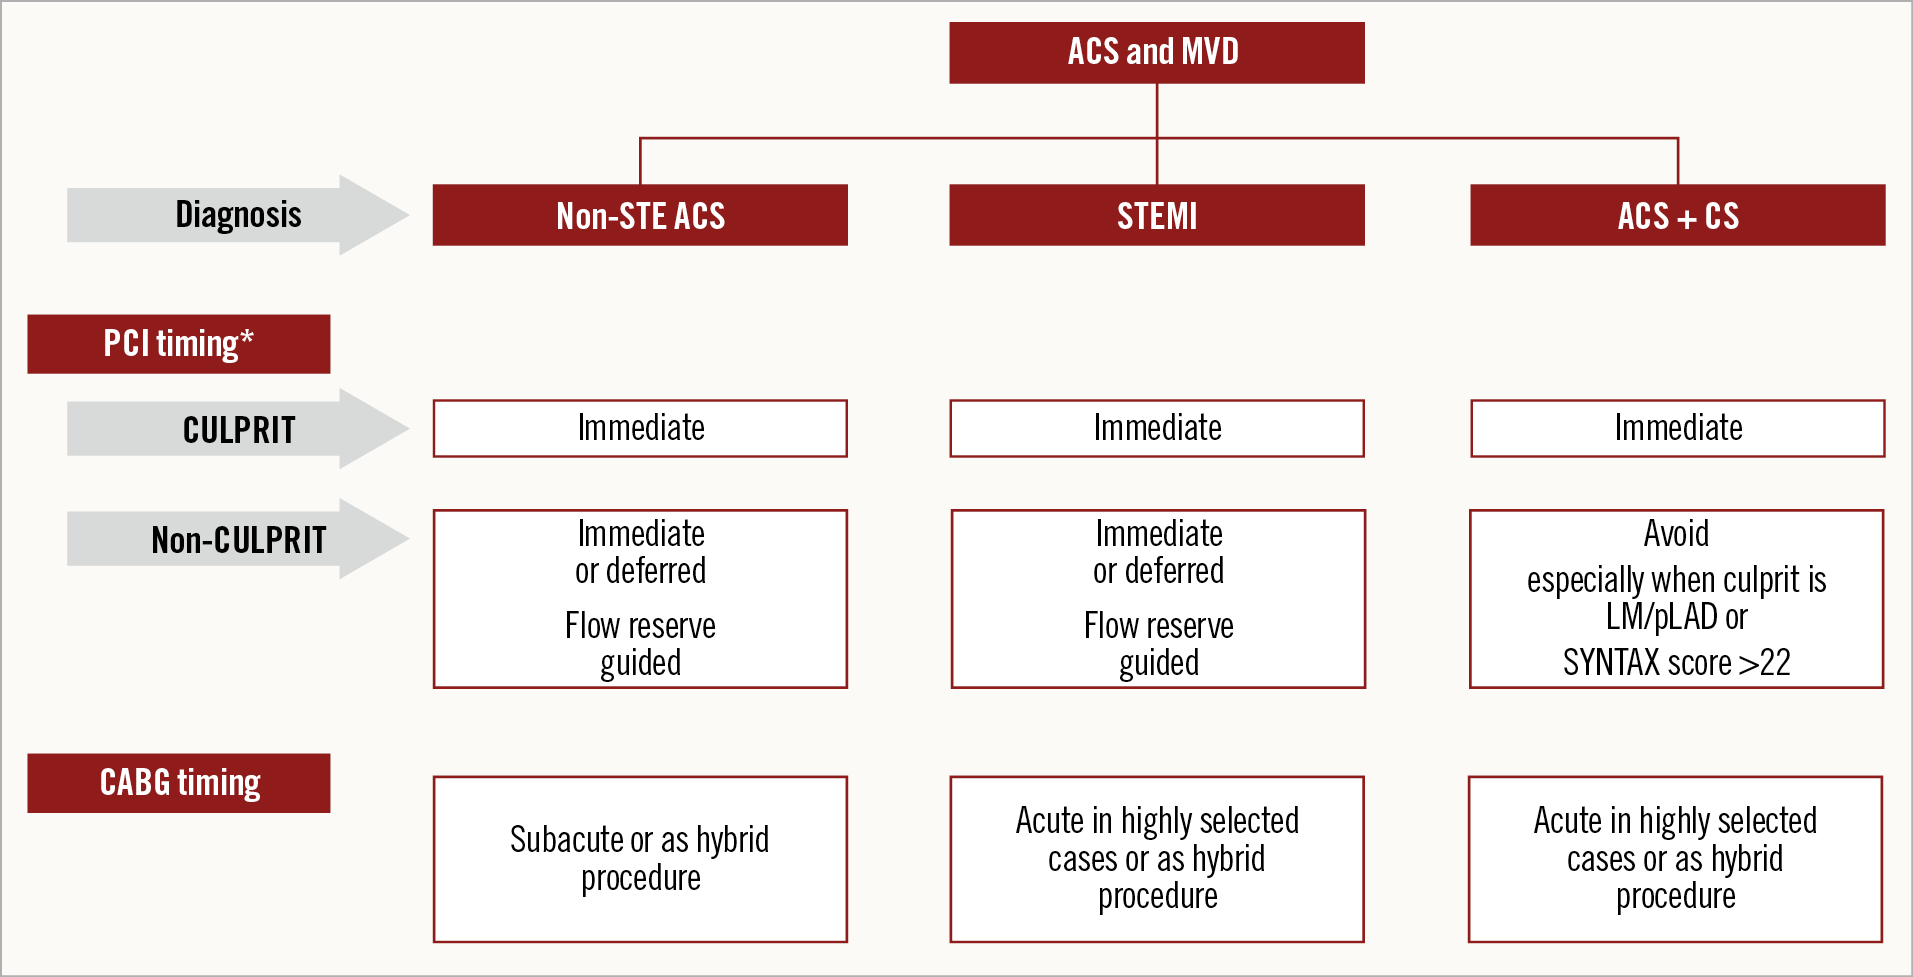 Figure 1. Schematic representation of proposed revascularisation strategies in patients with ACS and MVD. *PCI timing is relative to the time of coronary angiography. ACS: acute coronary syndromes; CS: cardiogenic shock; MVD: multivessel disease